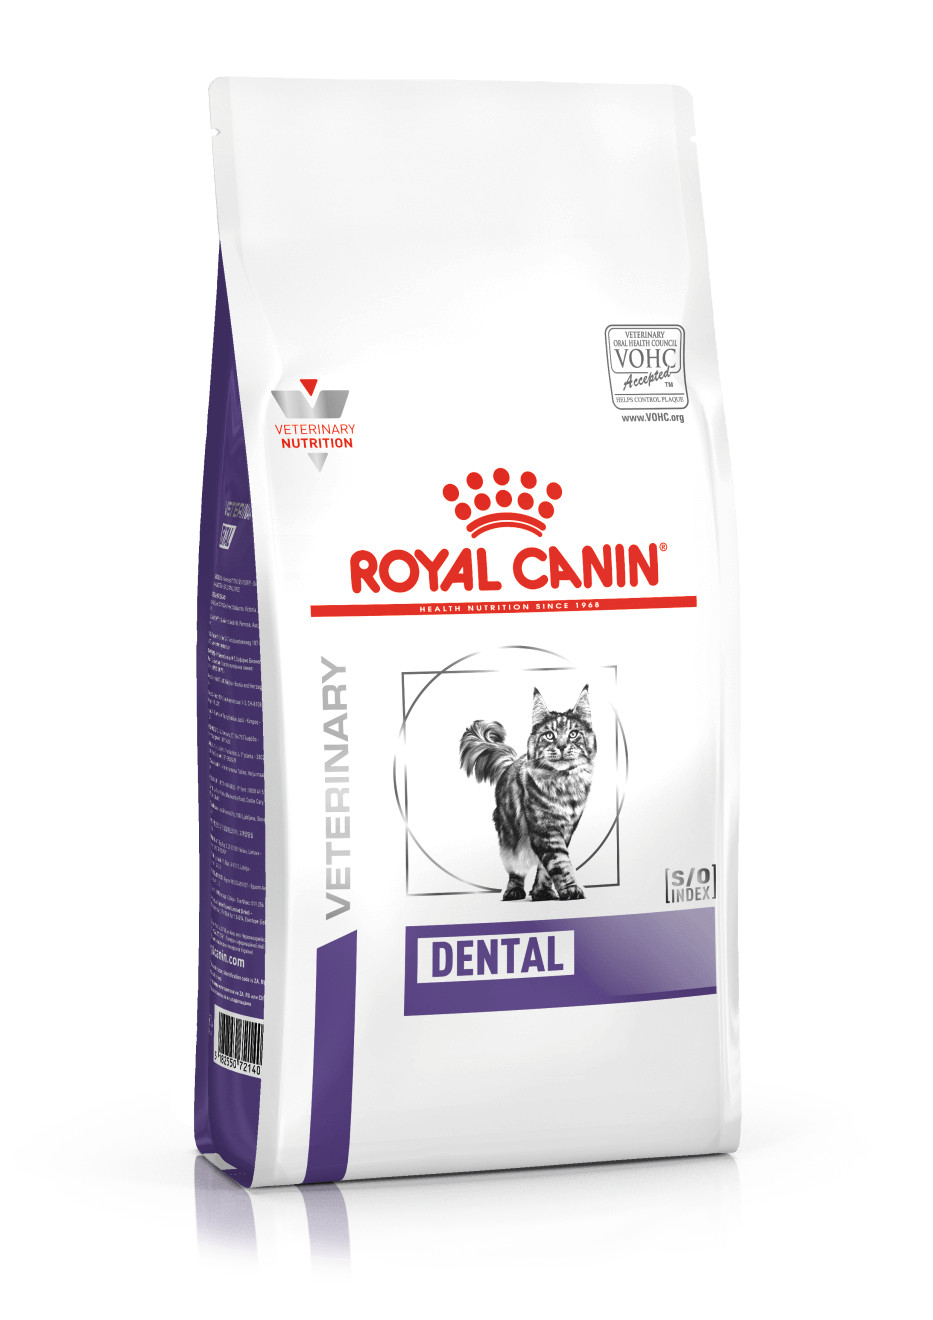 Royal Canin Veterinary Dental pour chat